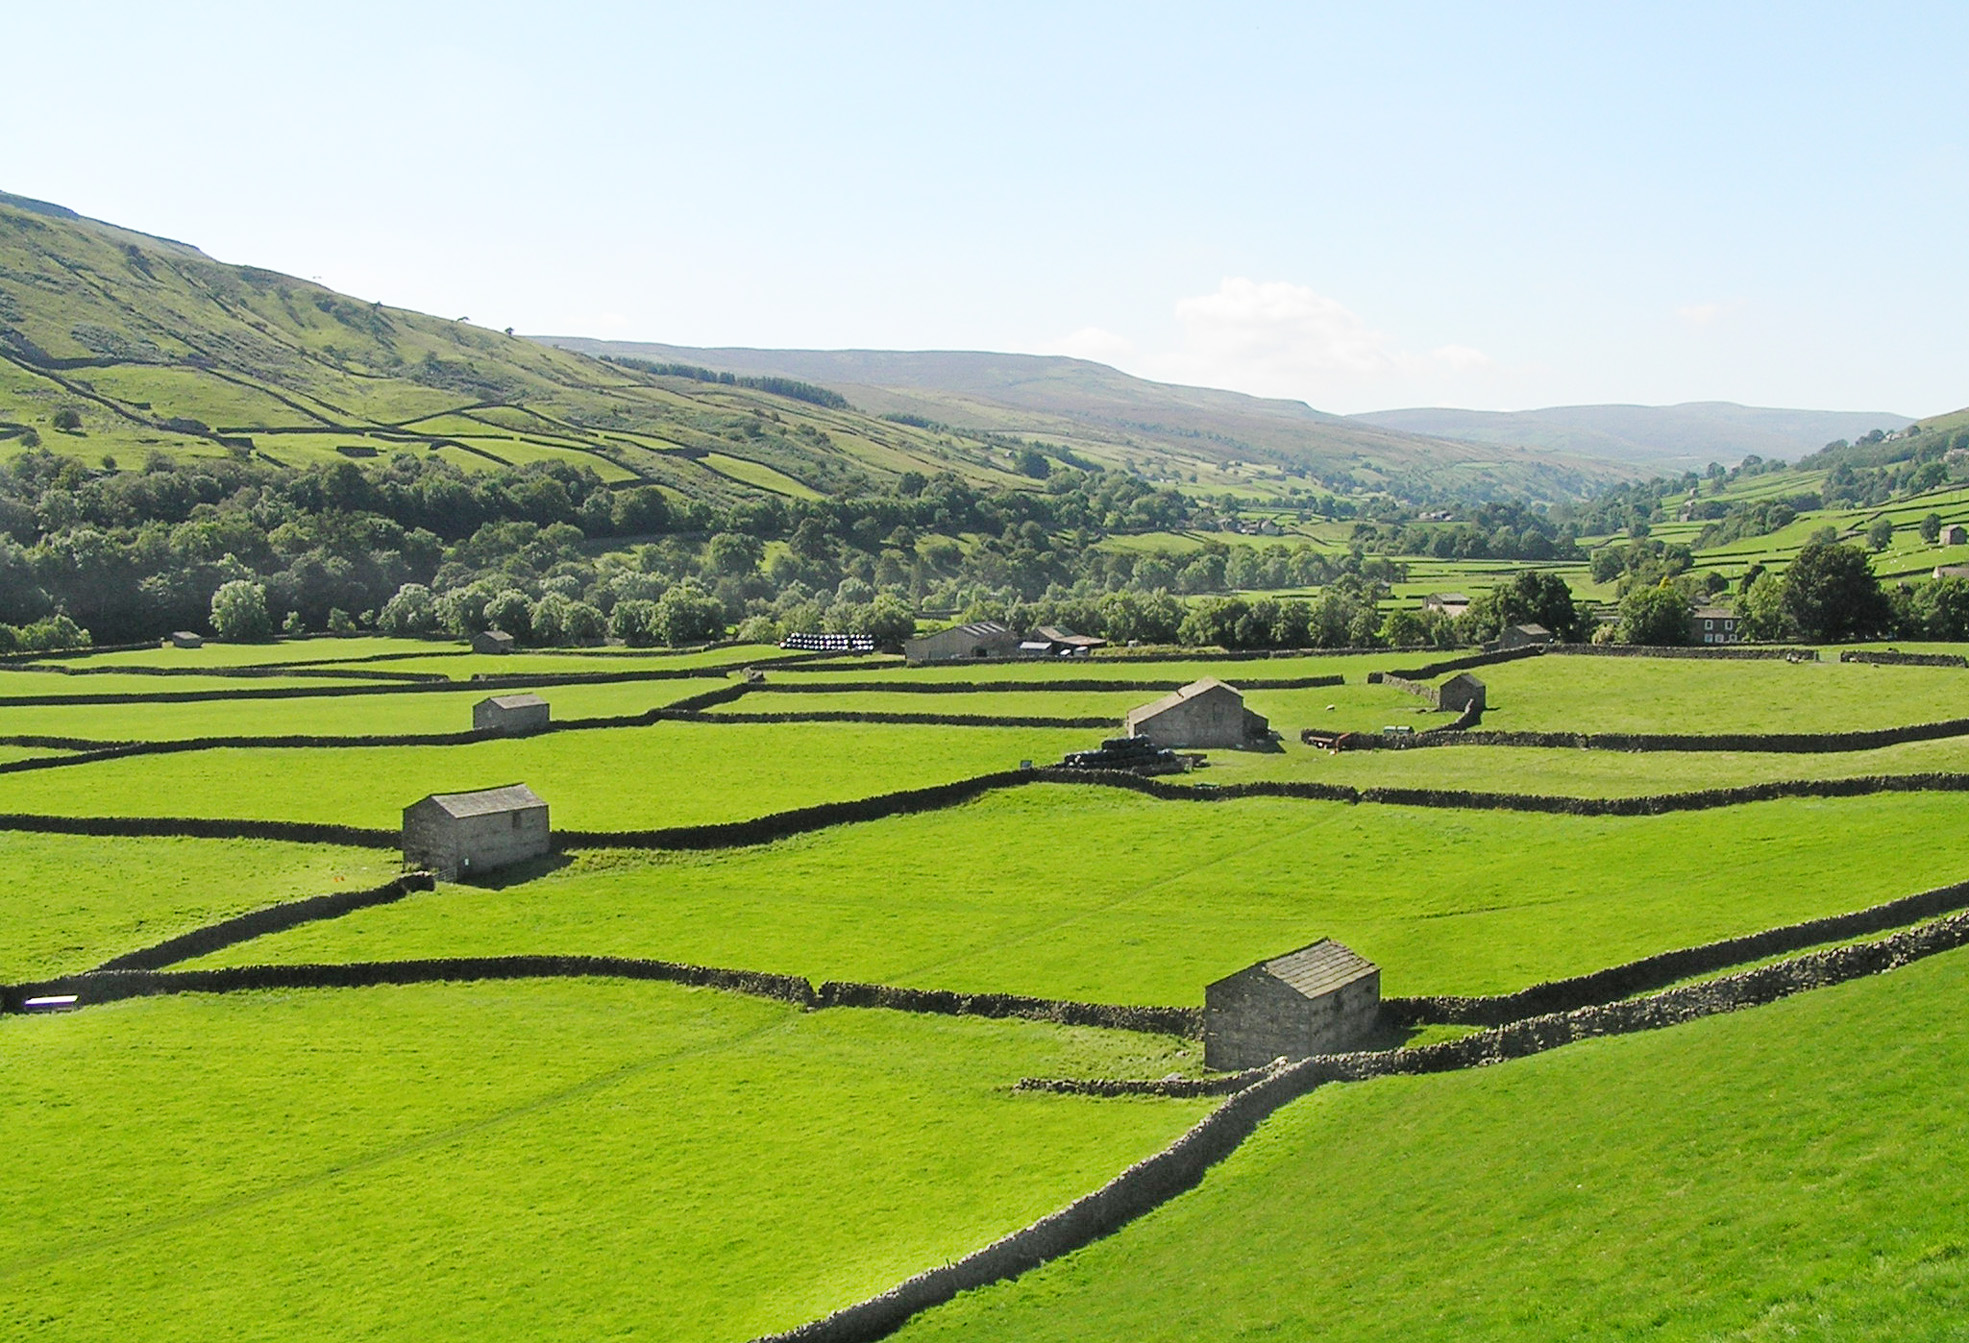 The Yorkshire Dales, which is famous for its stone barns